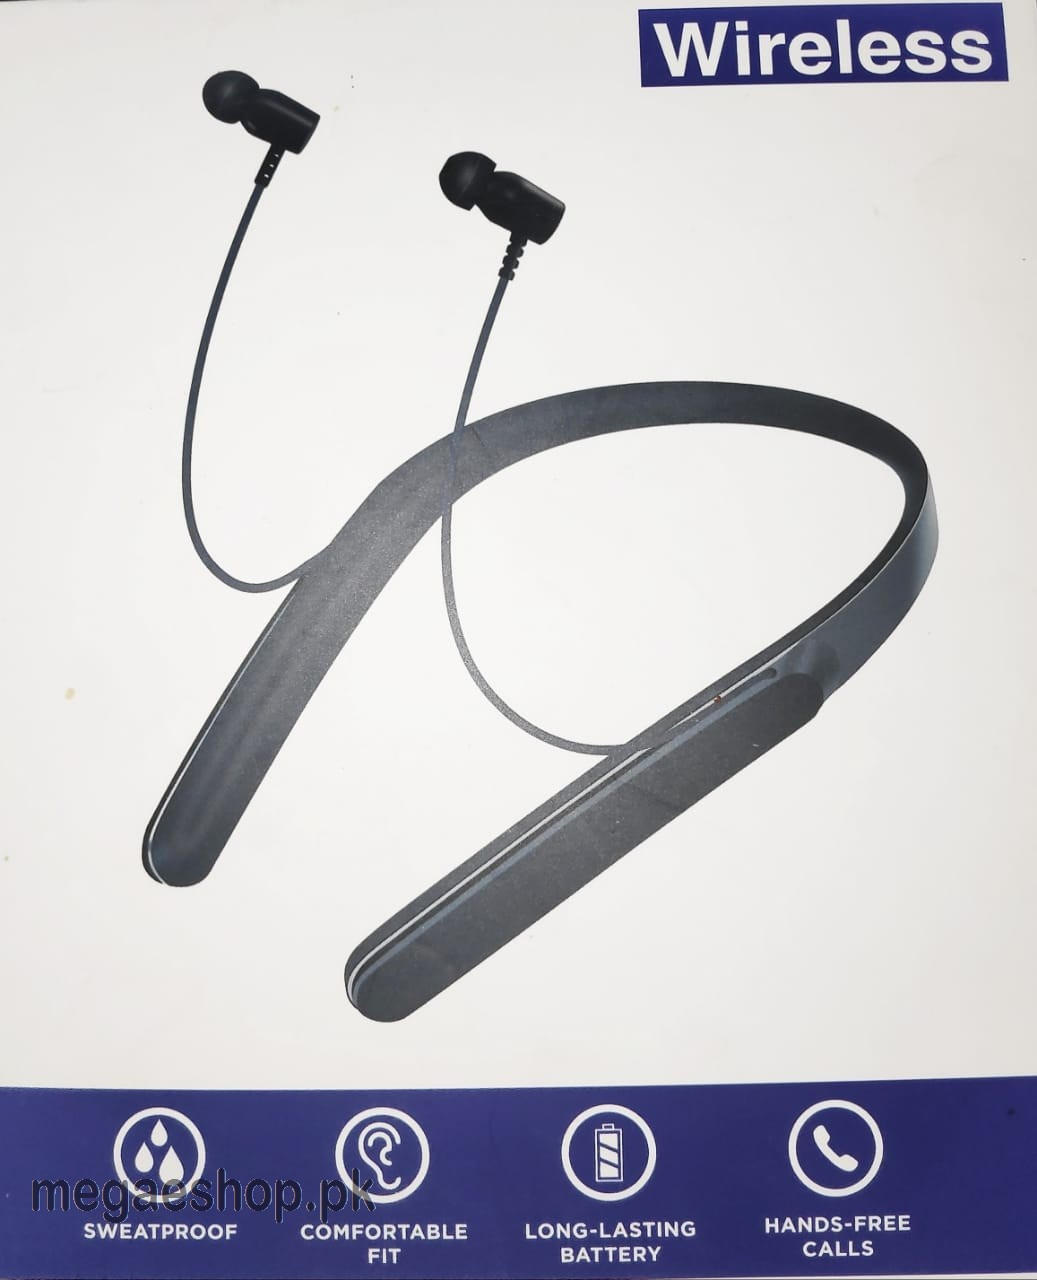 Stereo Headphone Bluetooth WI-C400 Wireless With TF Card Headset earphone